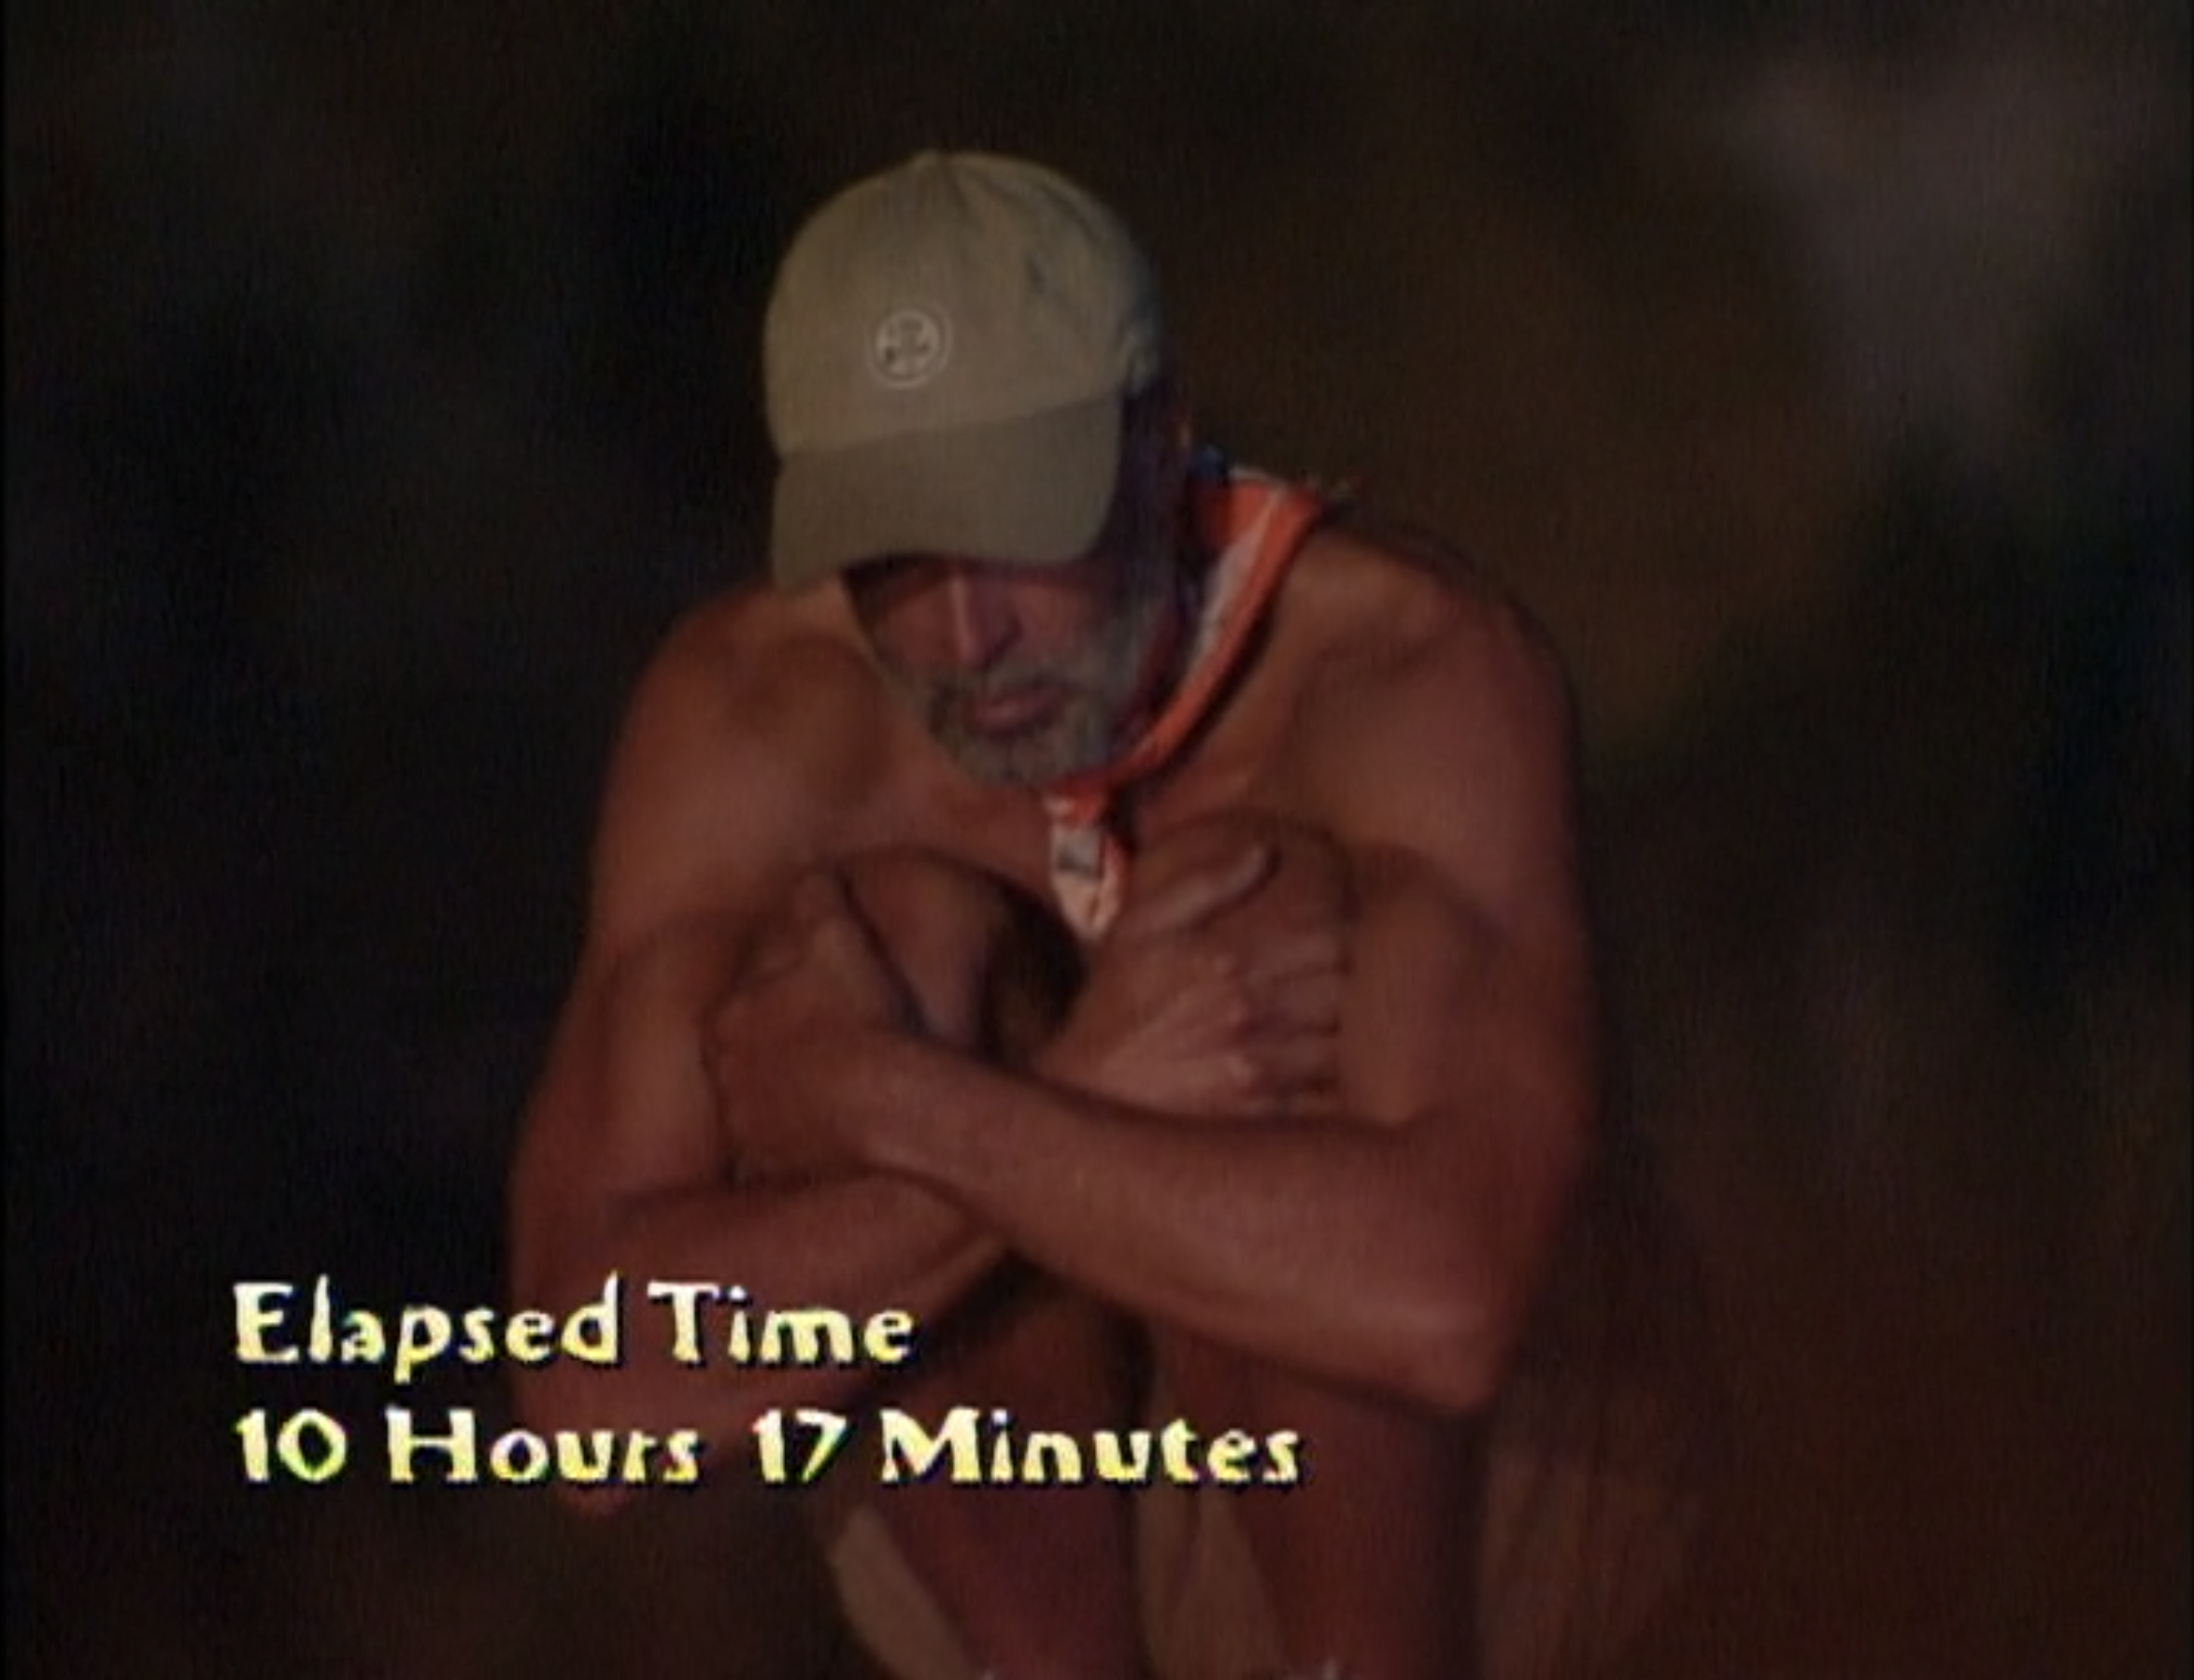 Keith Famie crouches on a pole for 10 hours and 17 minutes in Survivor: The Australian Outback